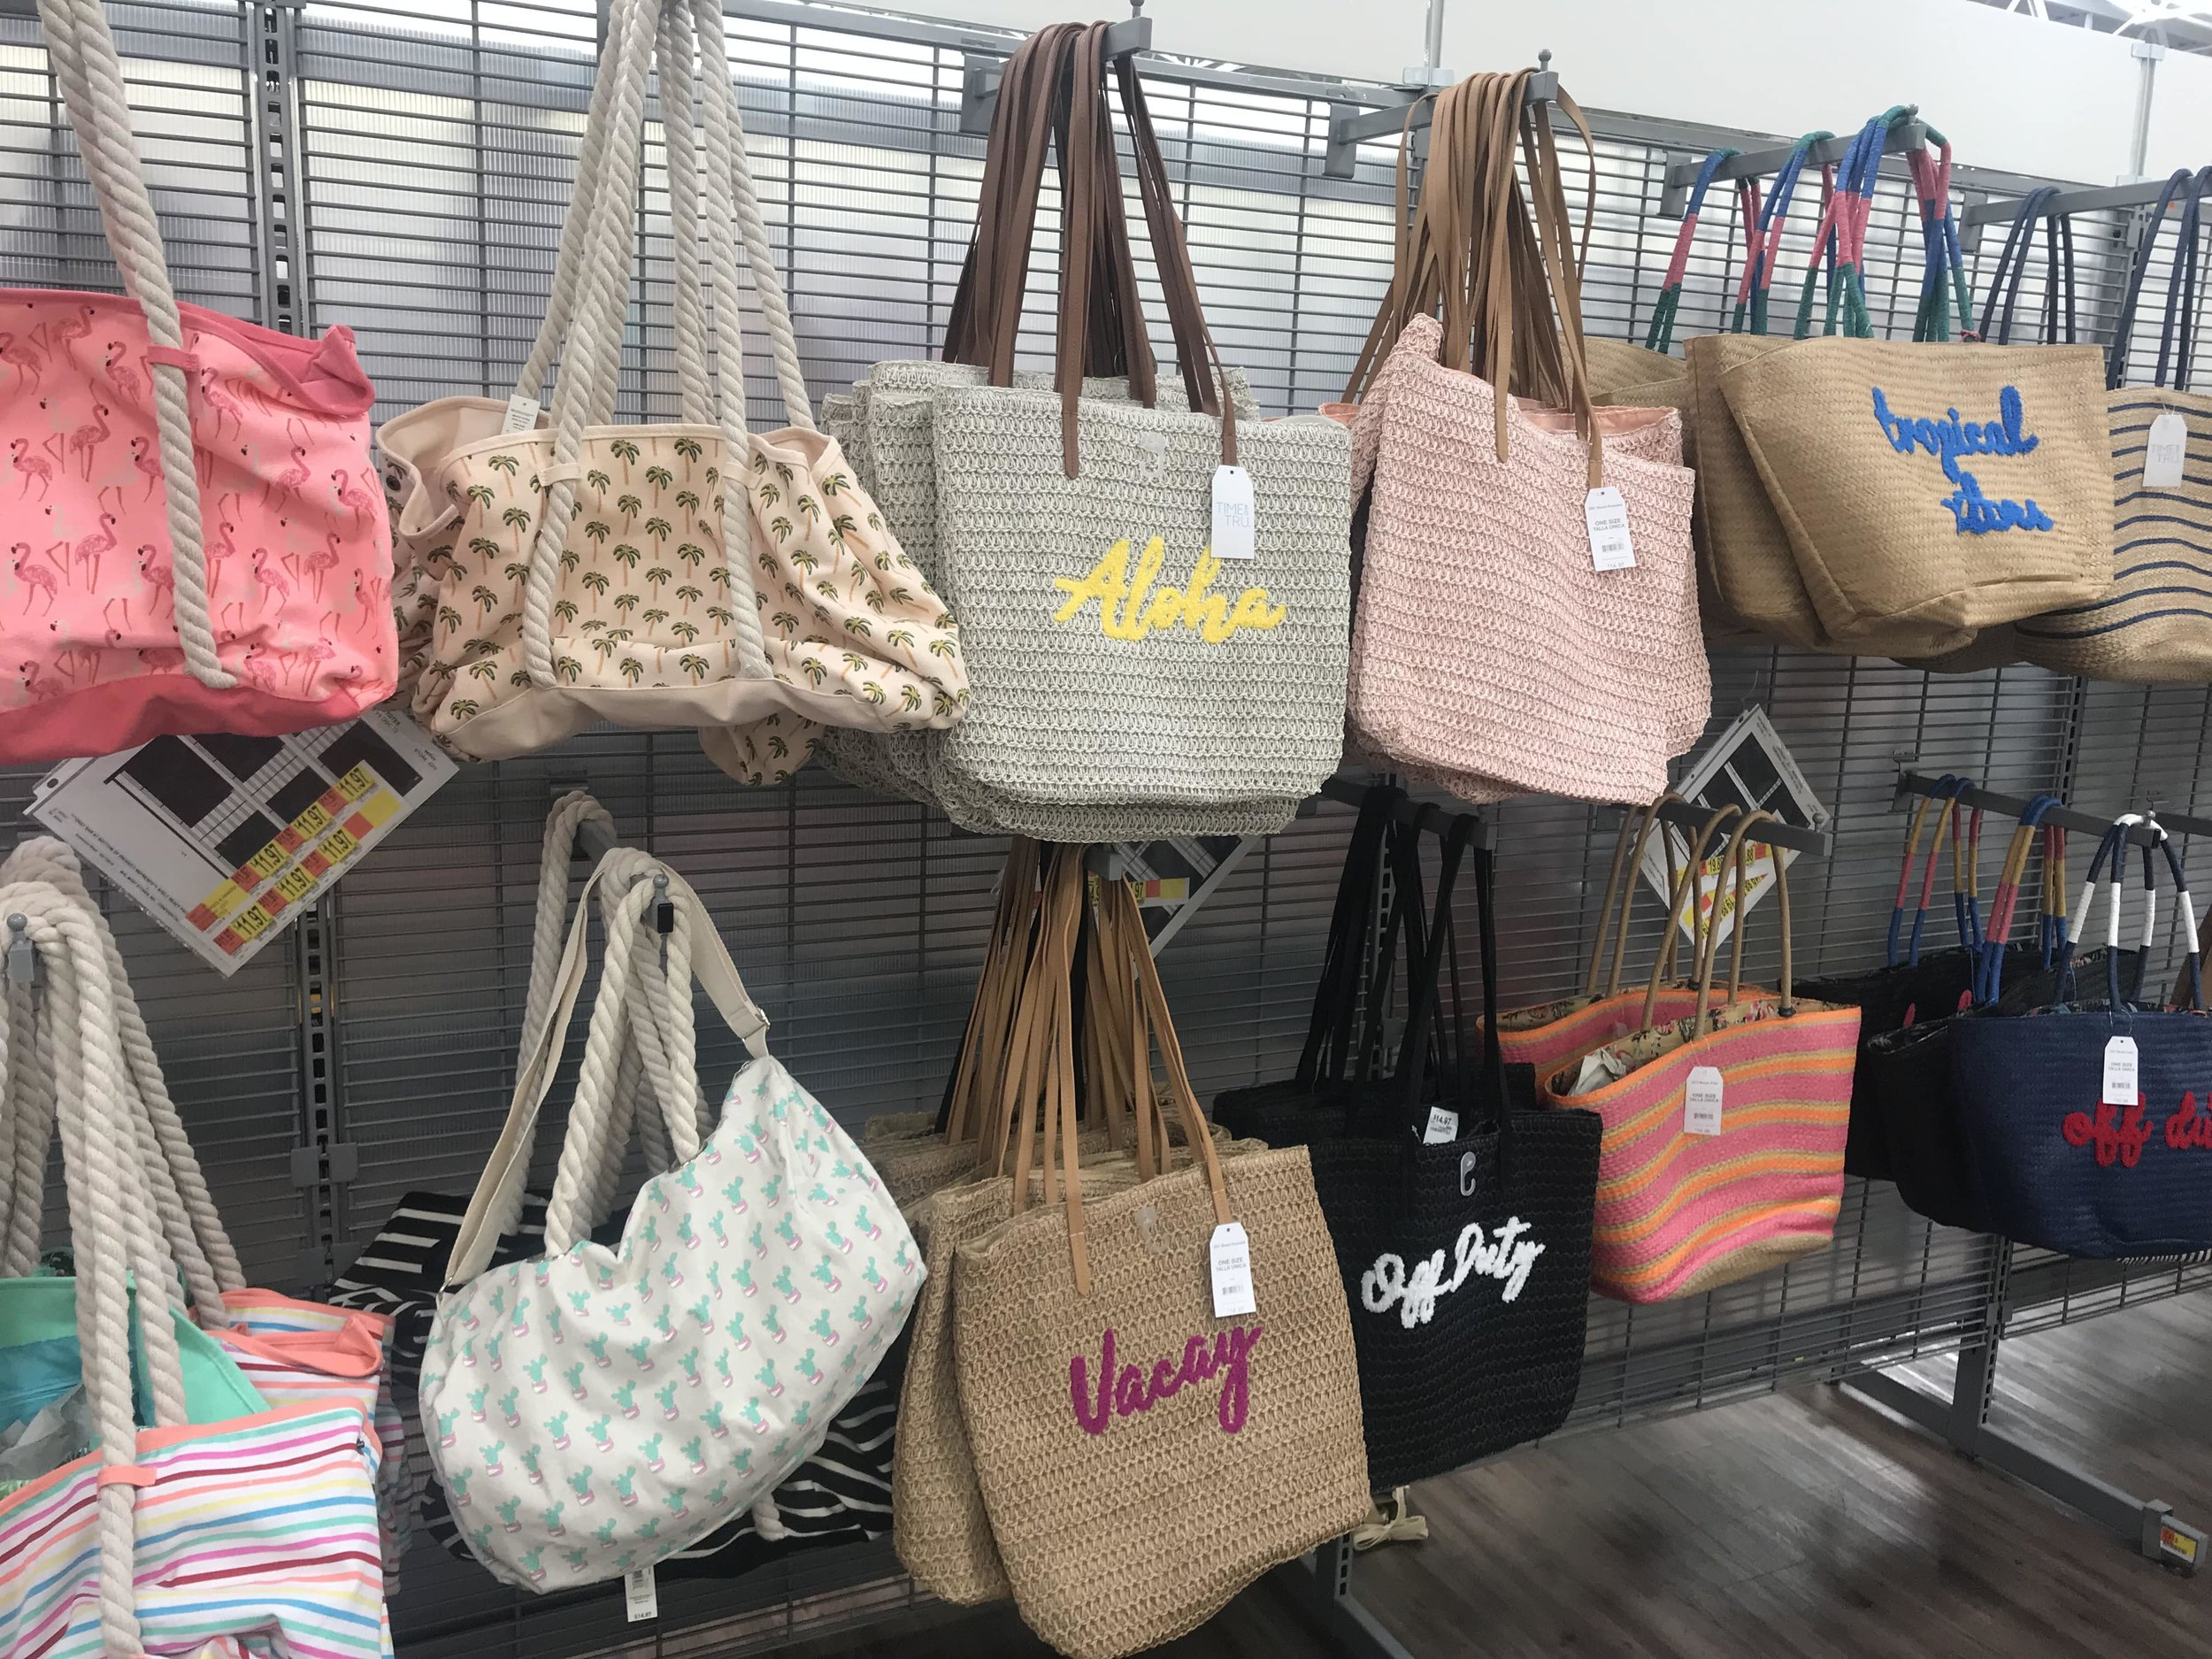 Walmart-slogan-and-print-beach-bags-min.jpg